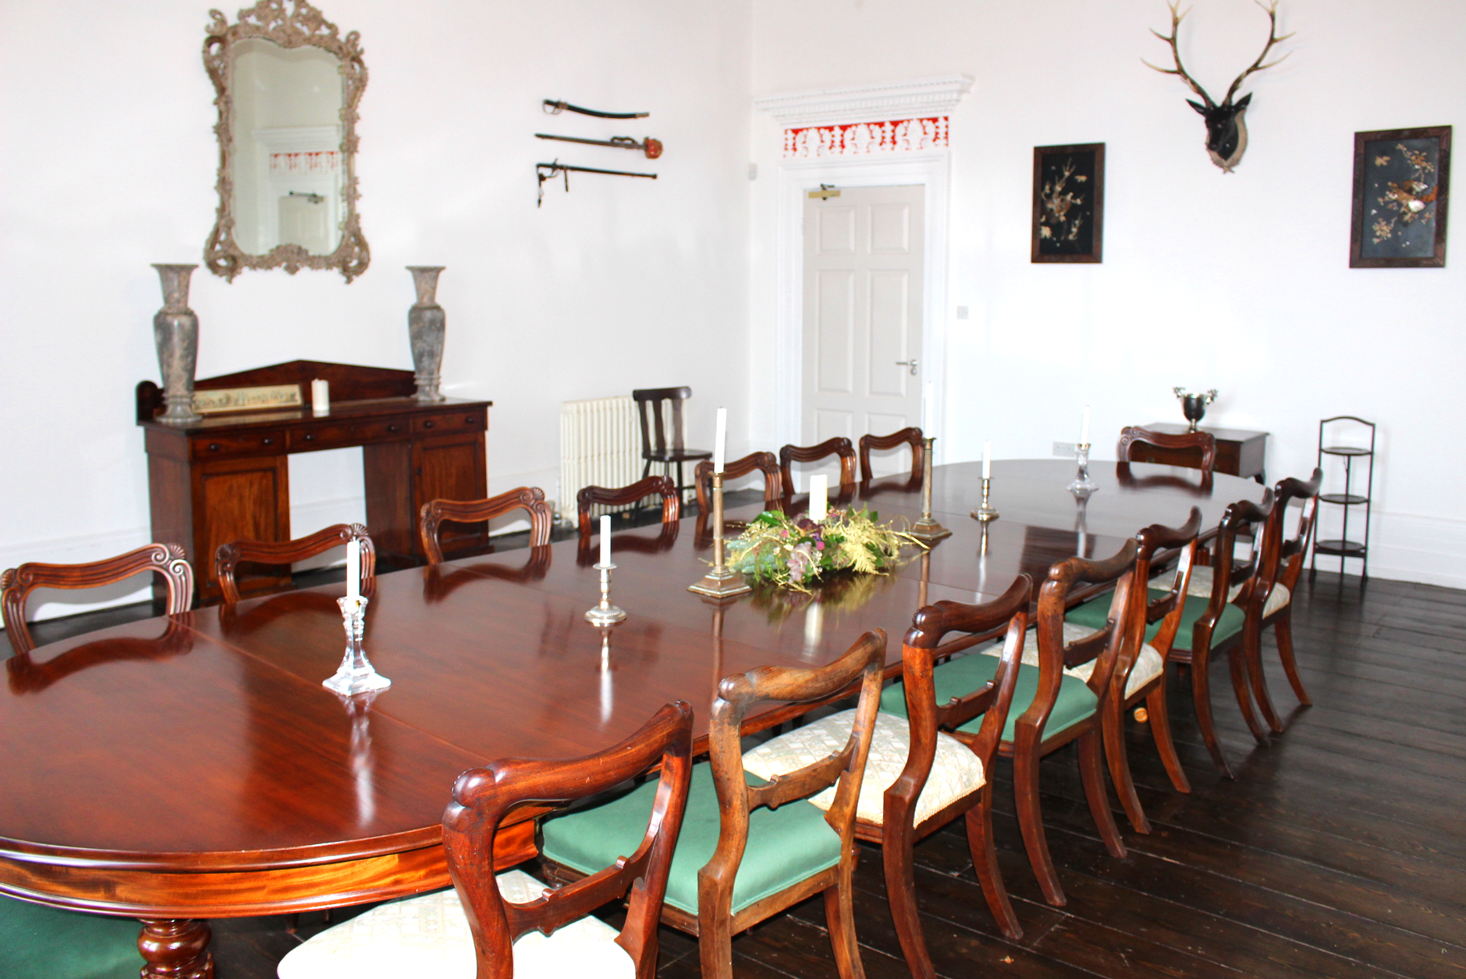 The dining room orlagh country house the dining room orlagh private house and estate for hire dublin location weddings and special events dzzzfo